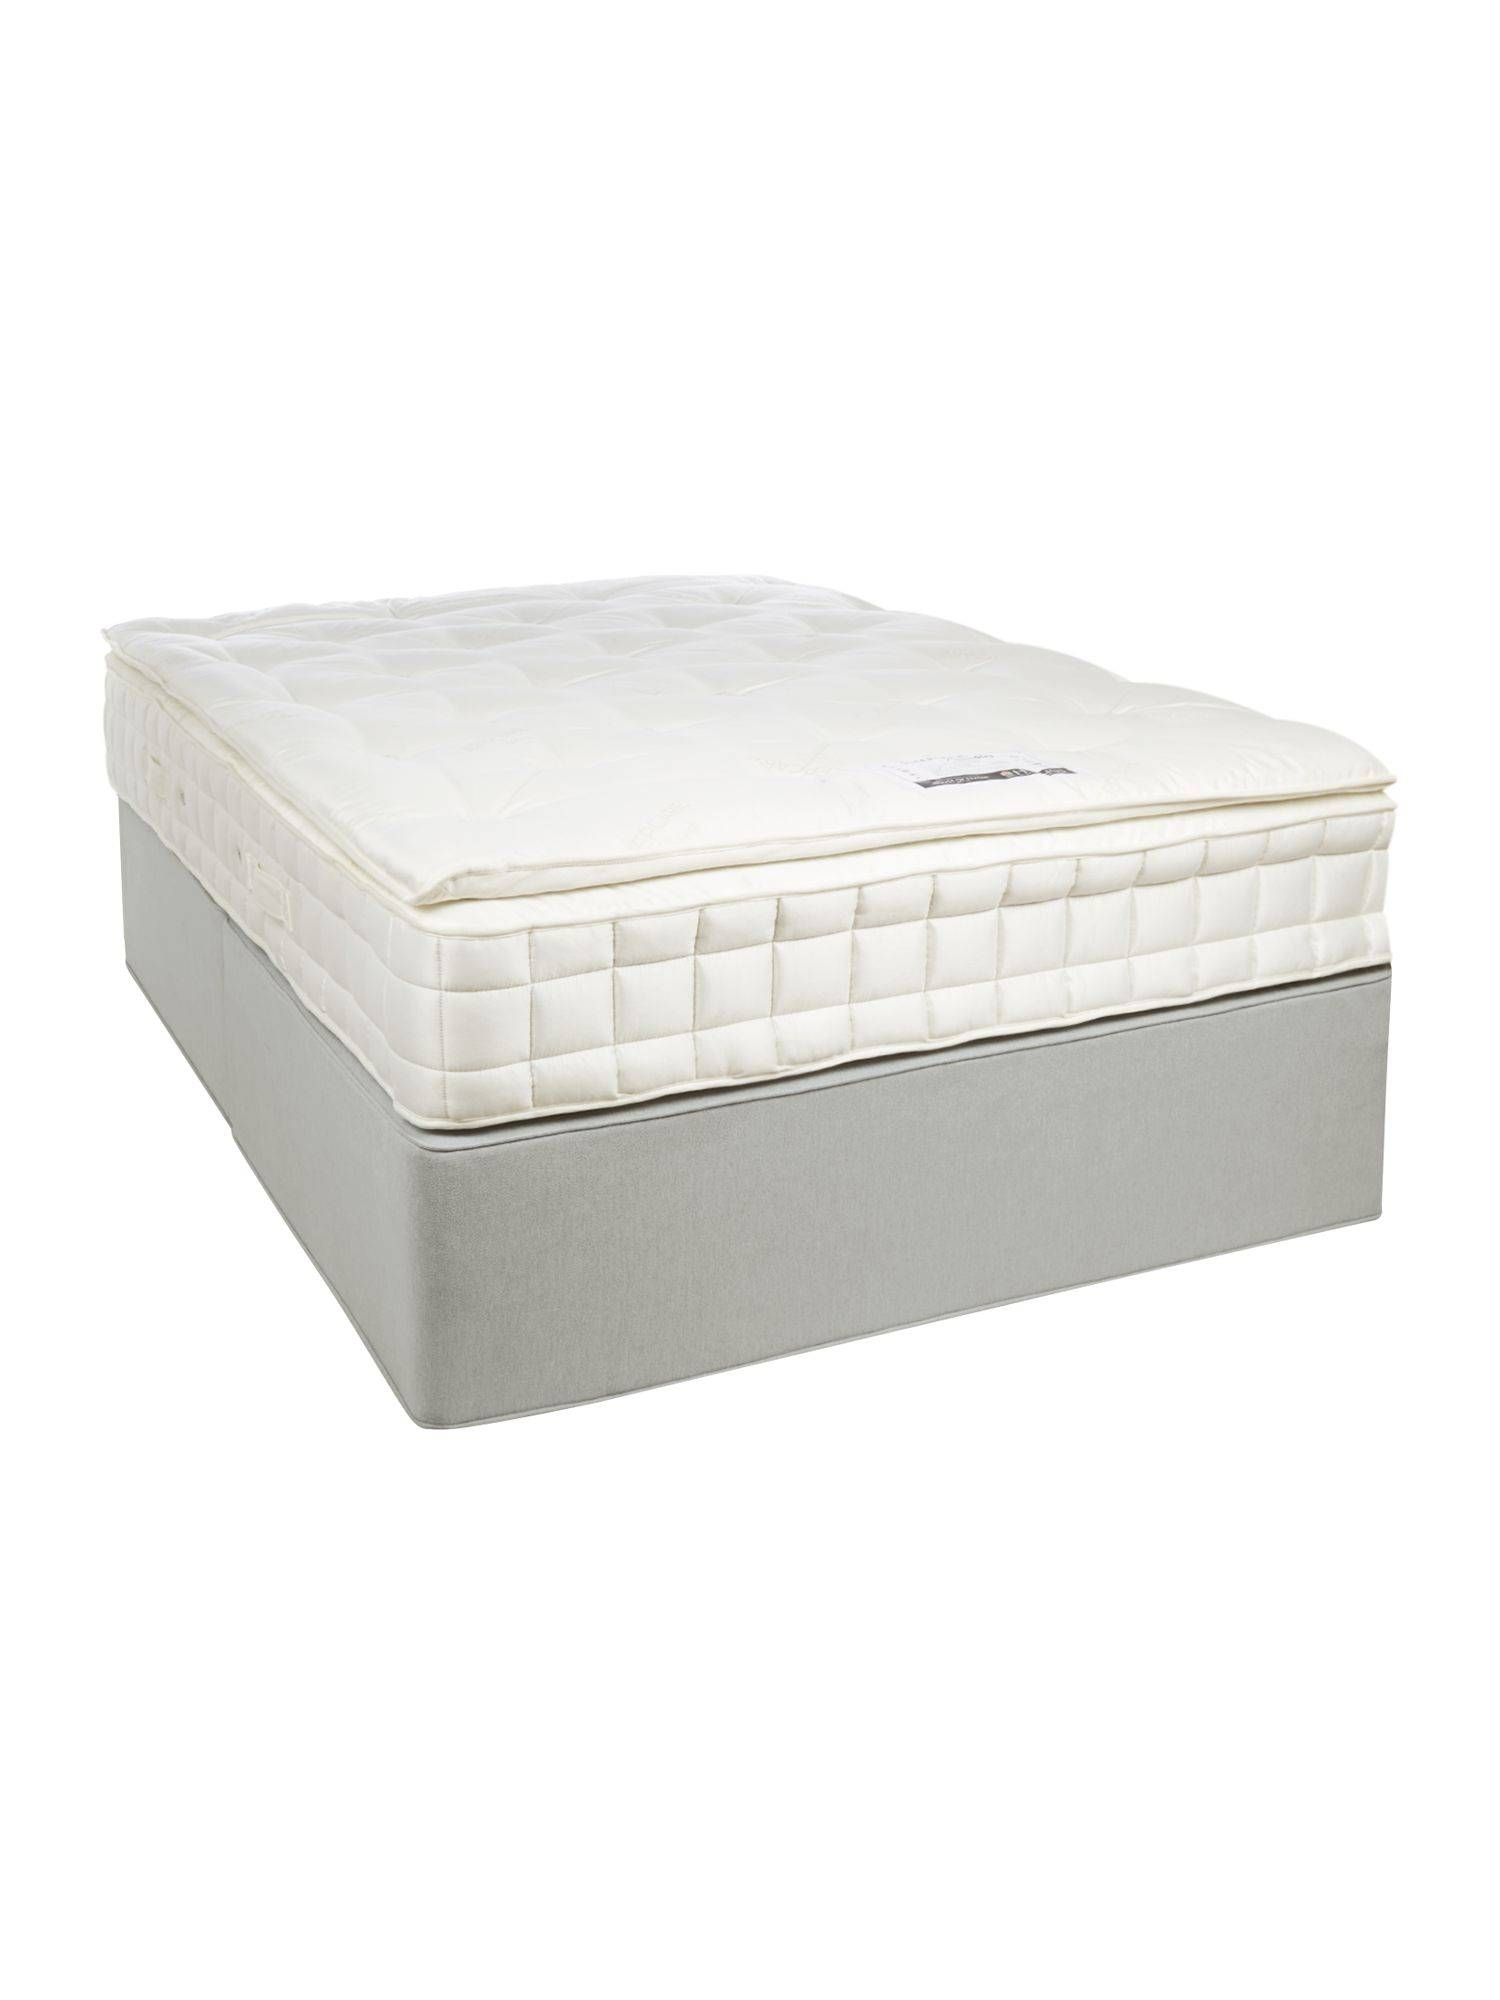 LINEA Home by Hypnos Sleepcare 1400 double sprung edge set imperio 600